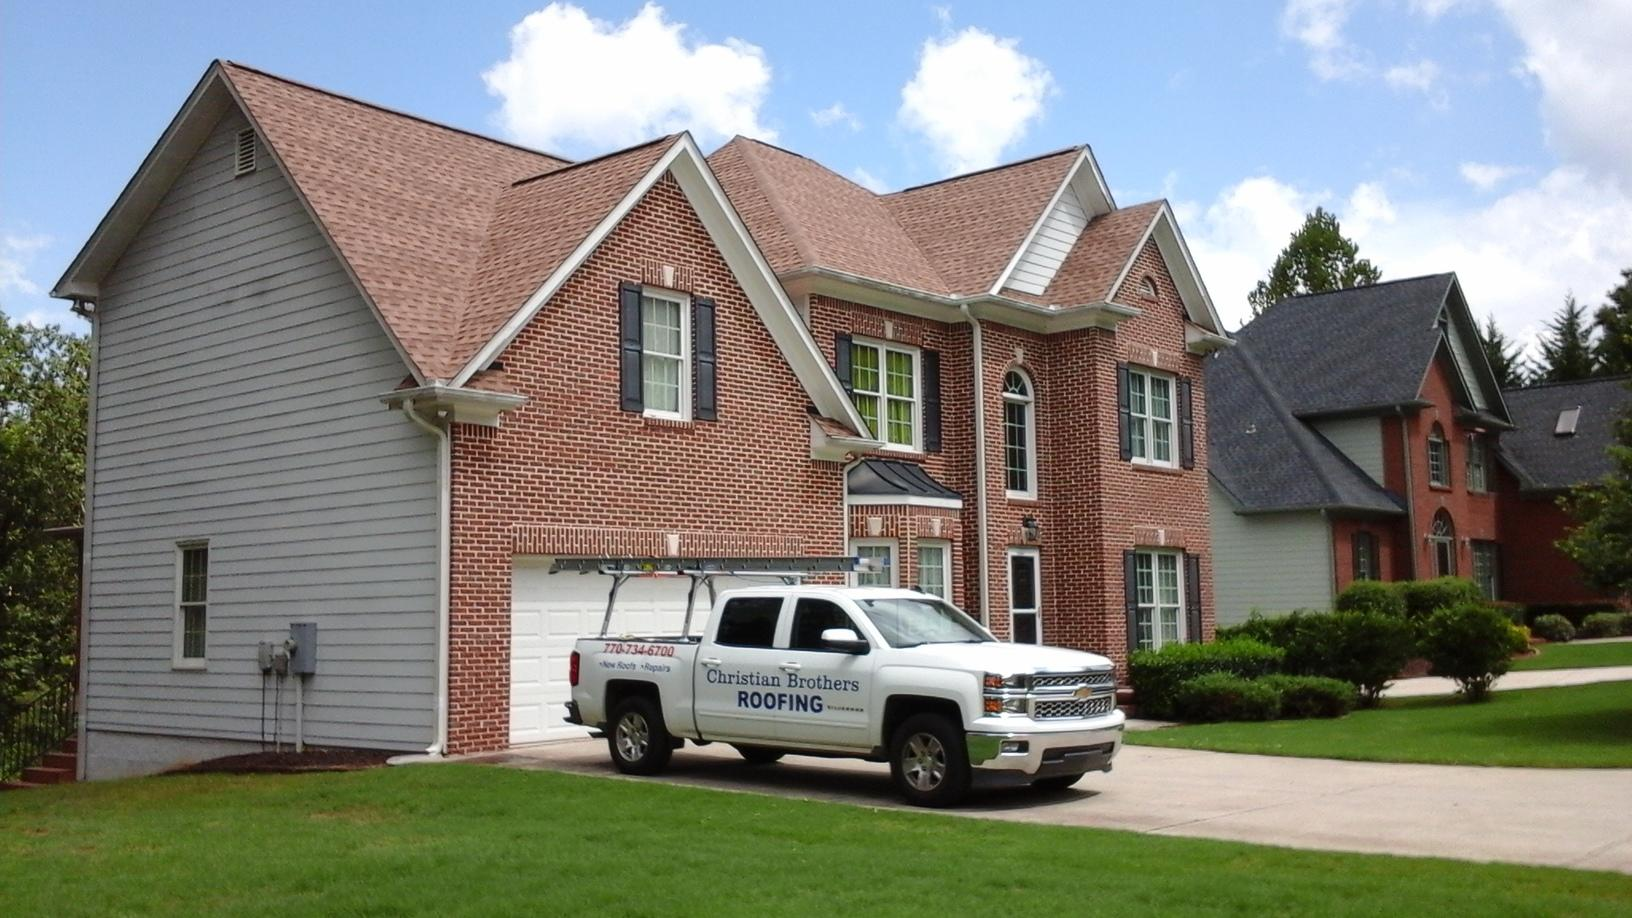 Roof Replacement in Flowery Branch, GA - After Photo